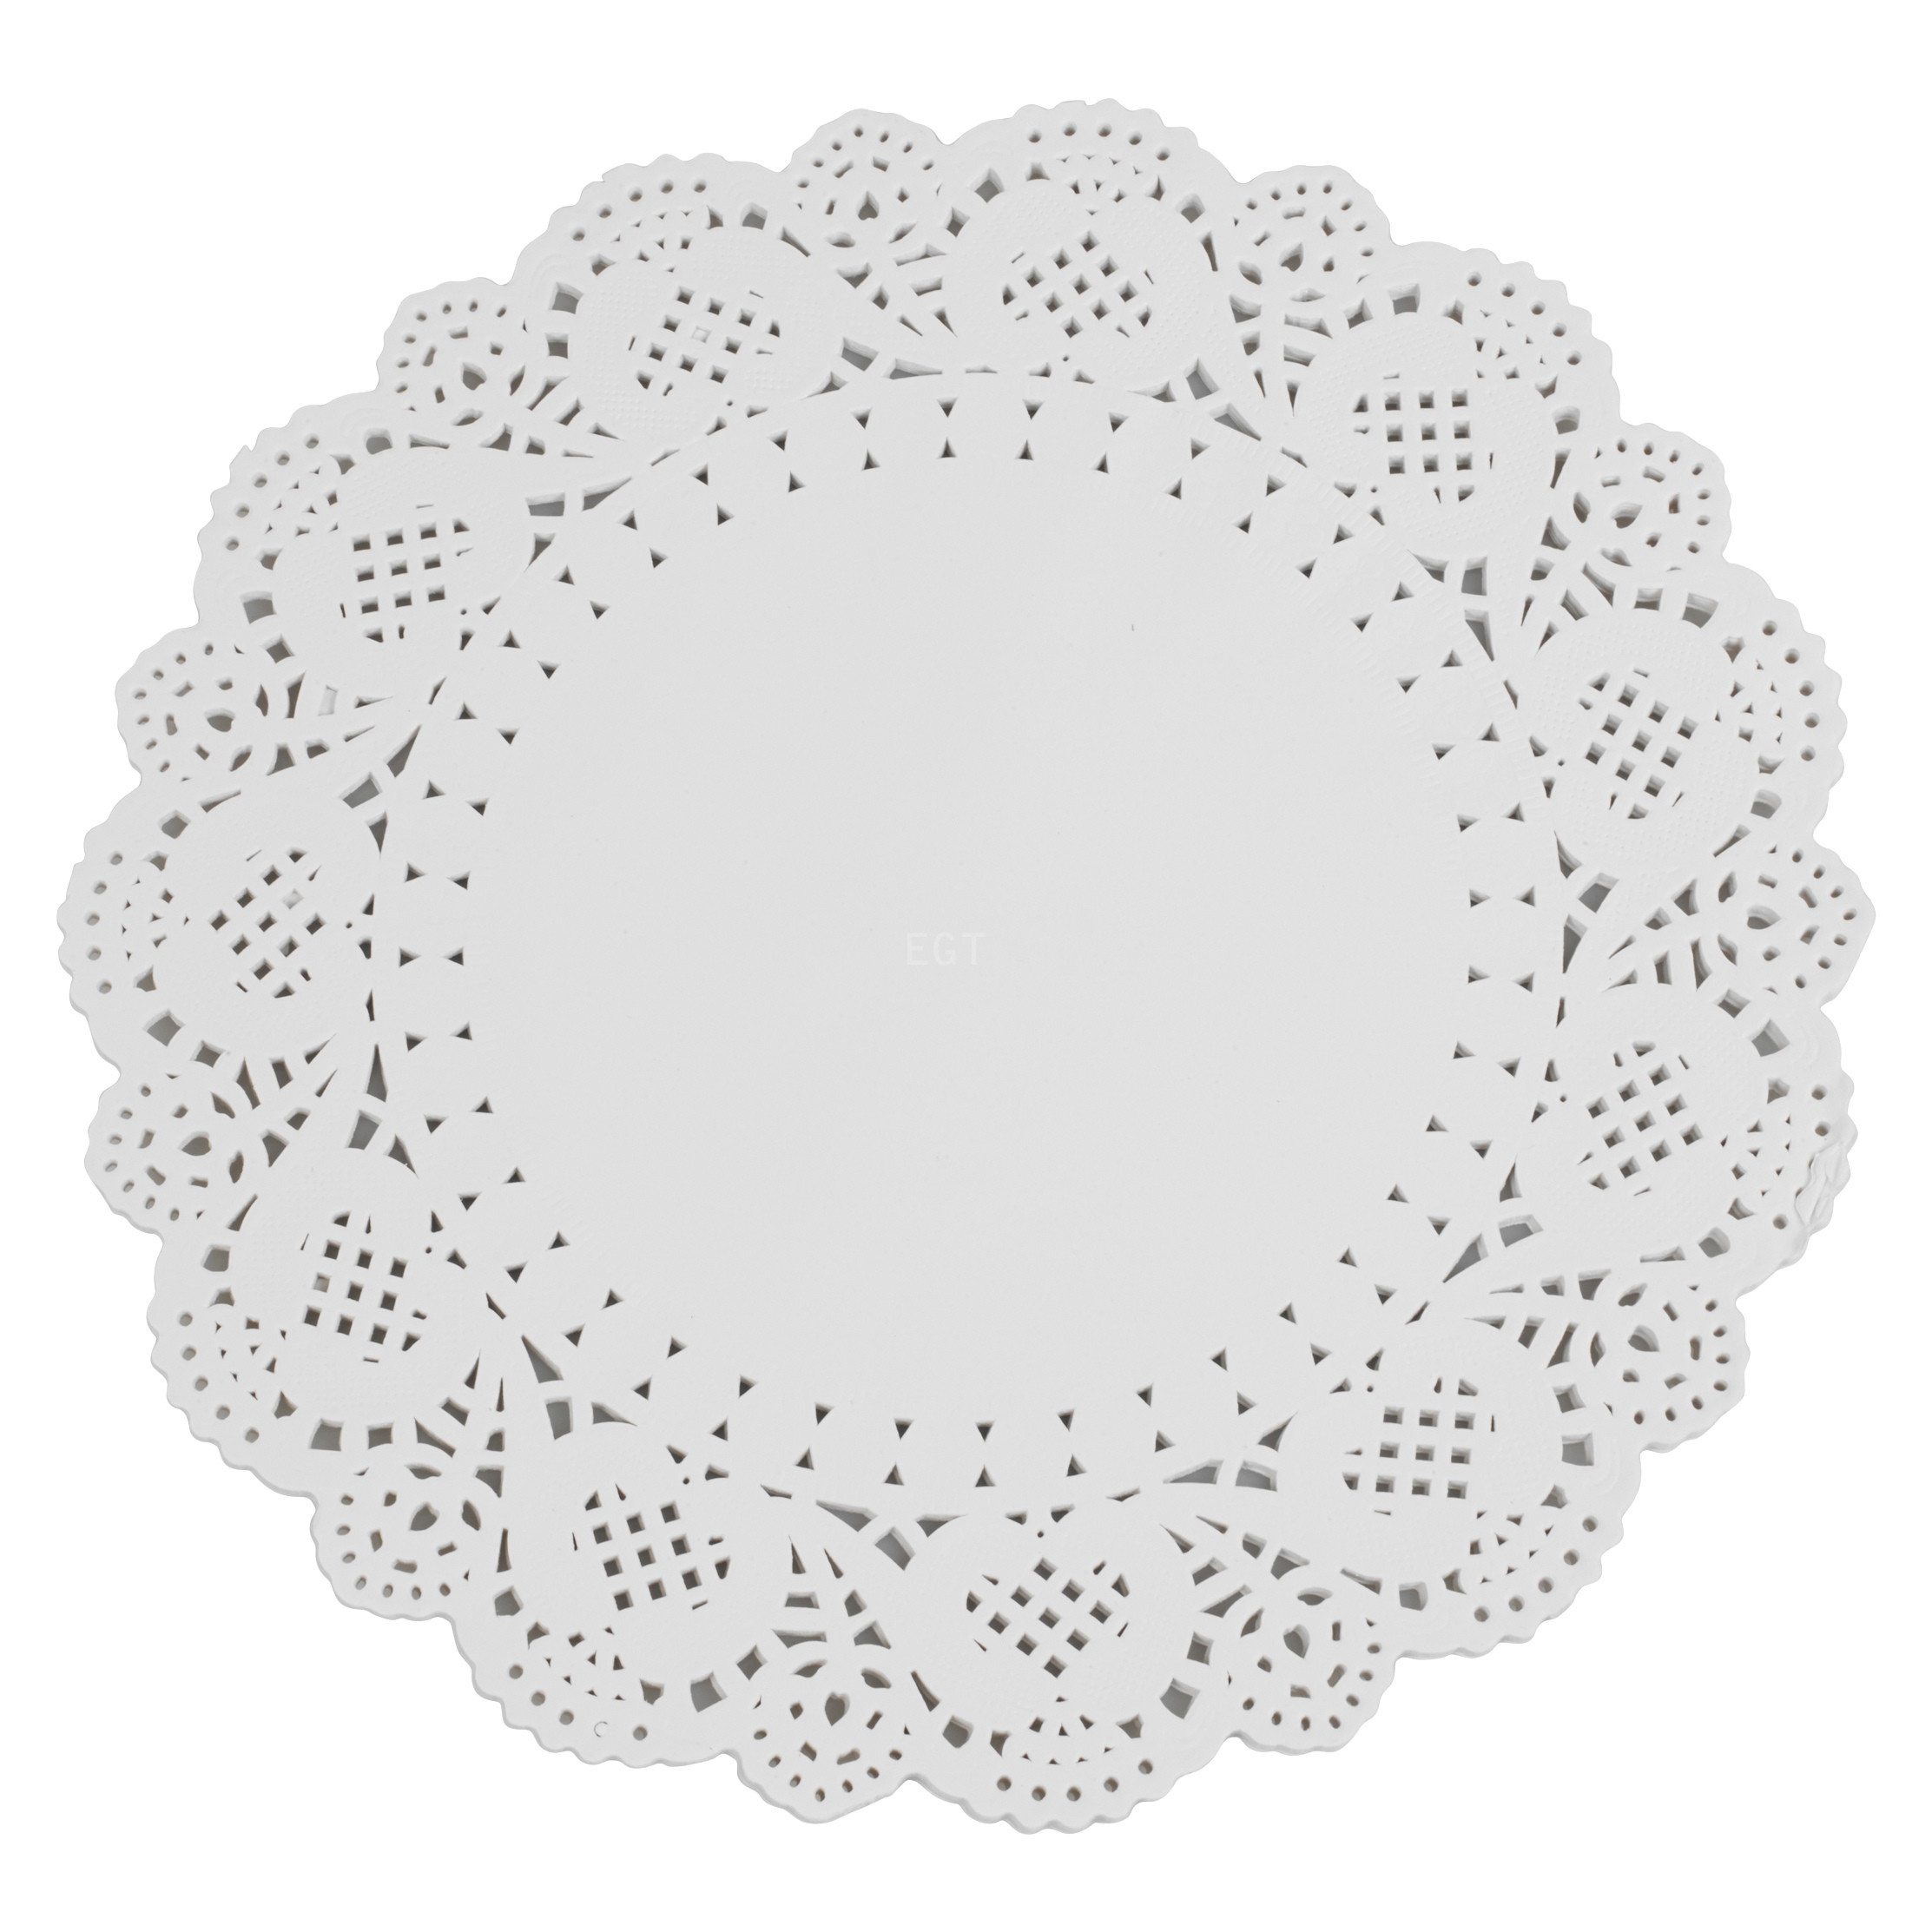 Paper Lace Doilies Inspirational Round White Paper Lace Doilies 5 Sizes Wedding Doily Of New 46 Models Paper Lace Doilies